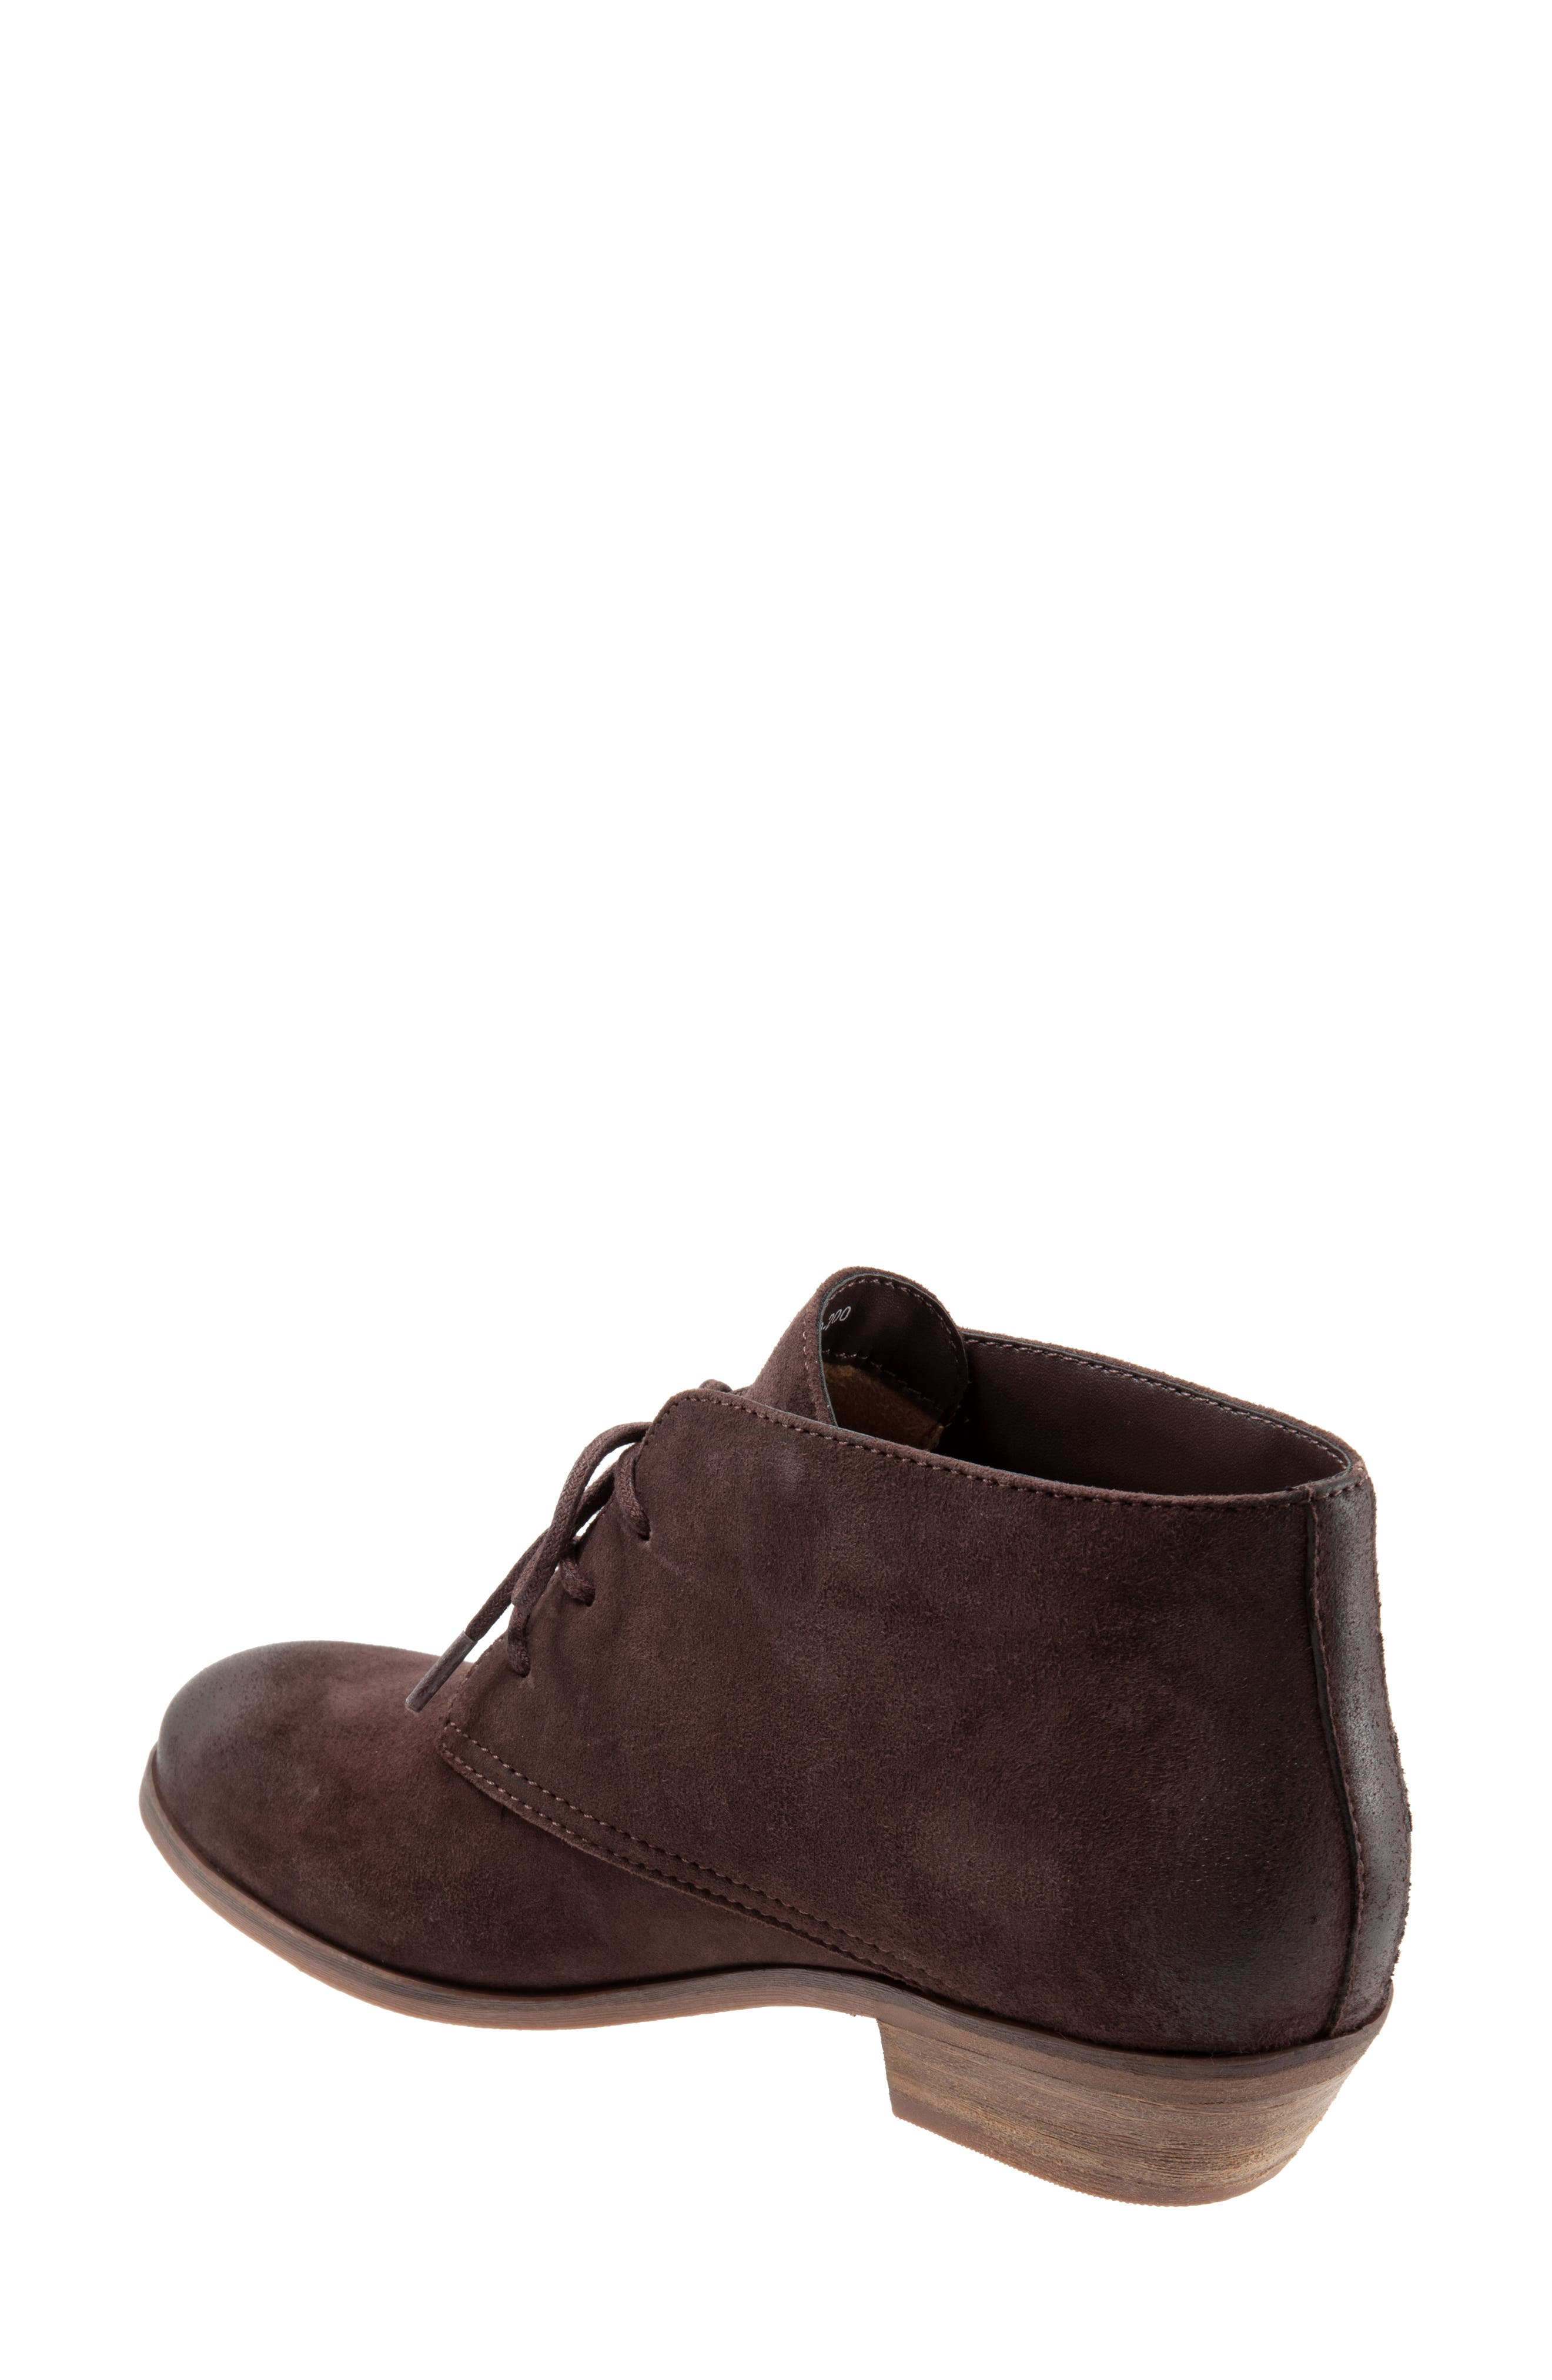 'Ramsey' Chukka Boot,                             Alternate thumbnail 2, color,                             DARK BROWN LEATHER